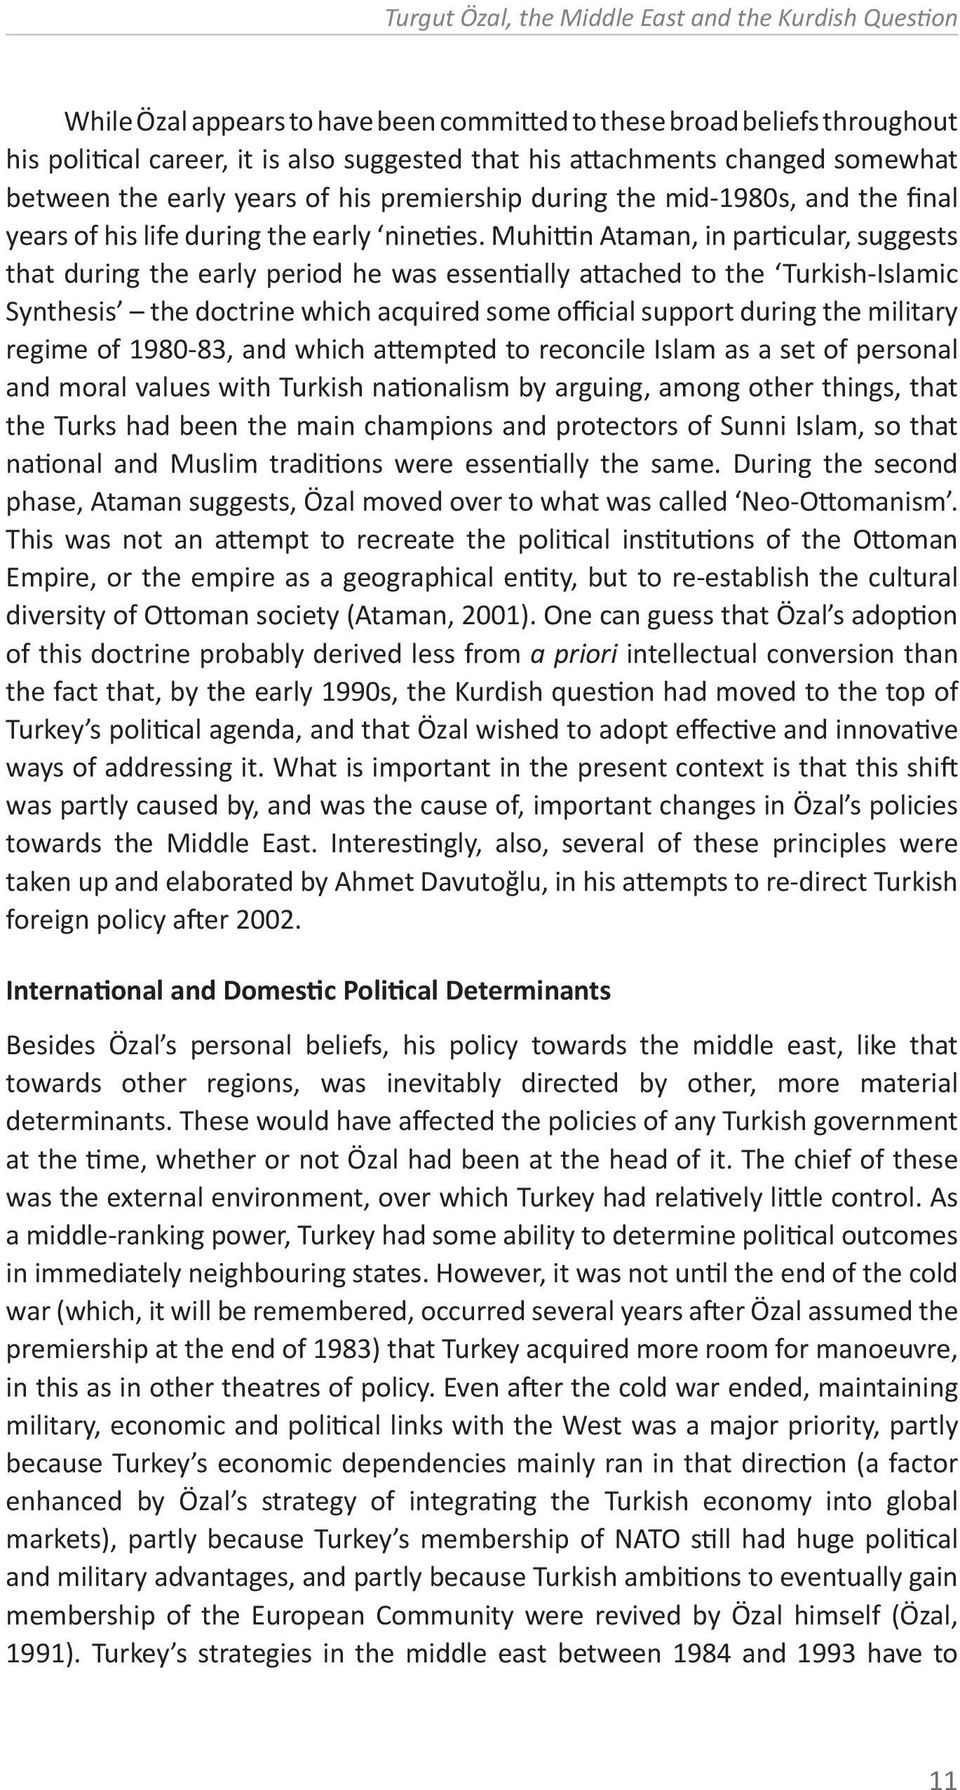 Muhittin Ataman, in particular, suggests that during the early period he was essentially attached to the Turkish-Islamic Synthesis the doctrine which acquired some official support during the